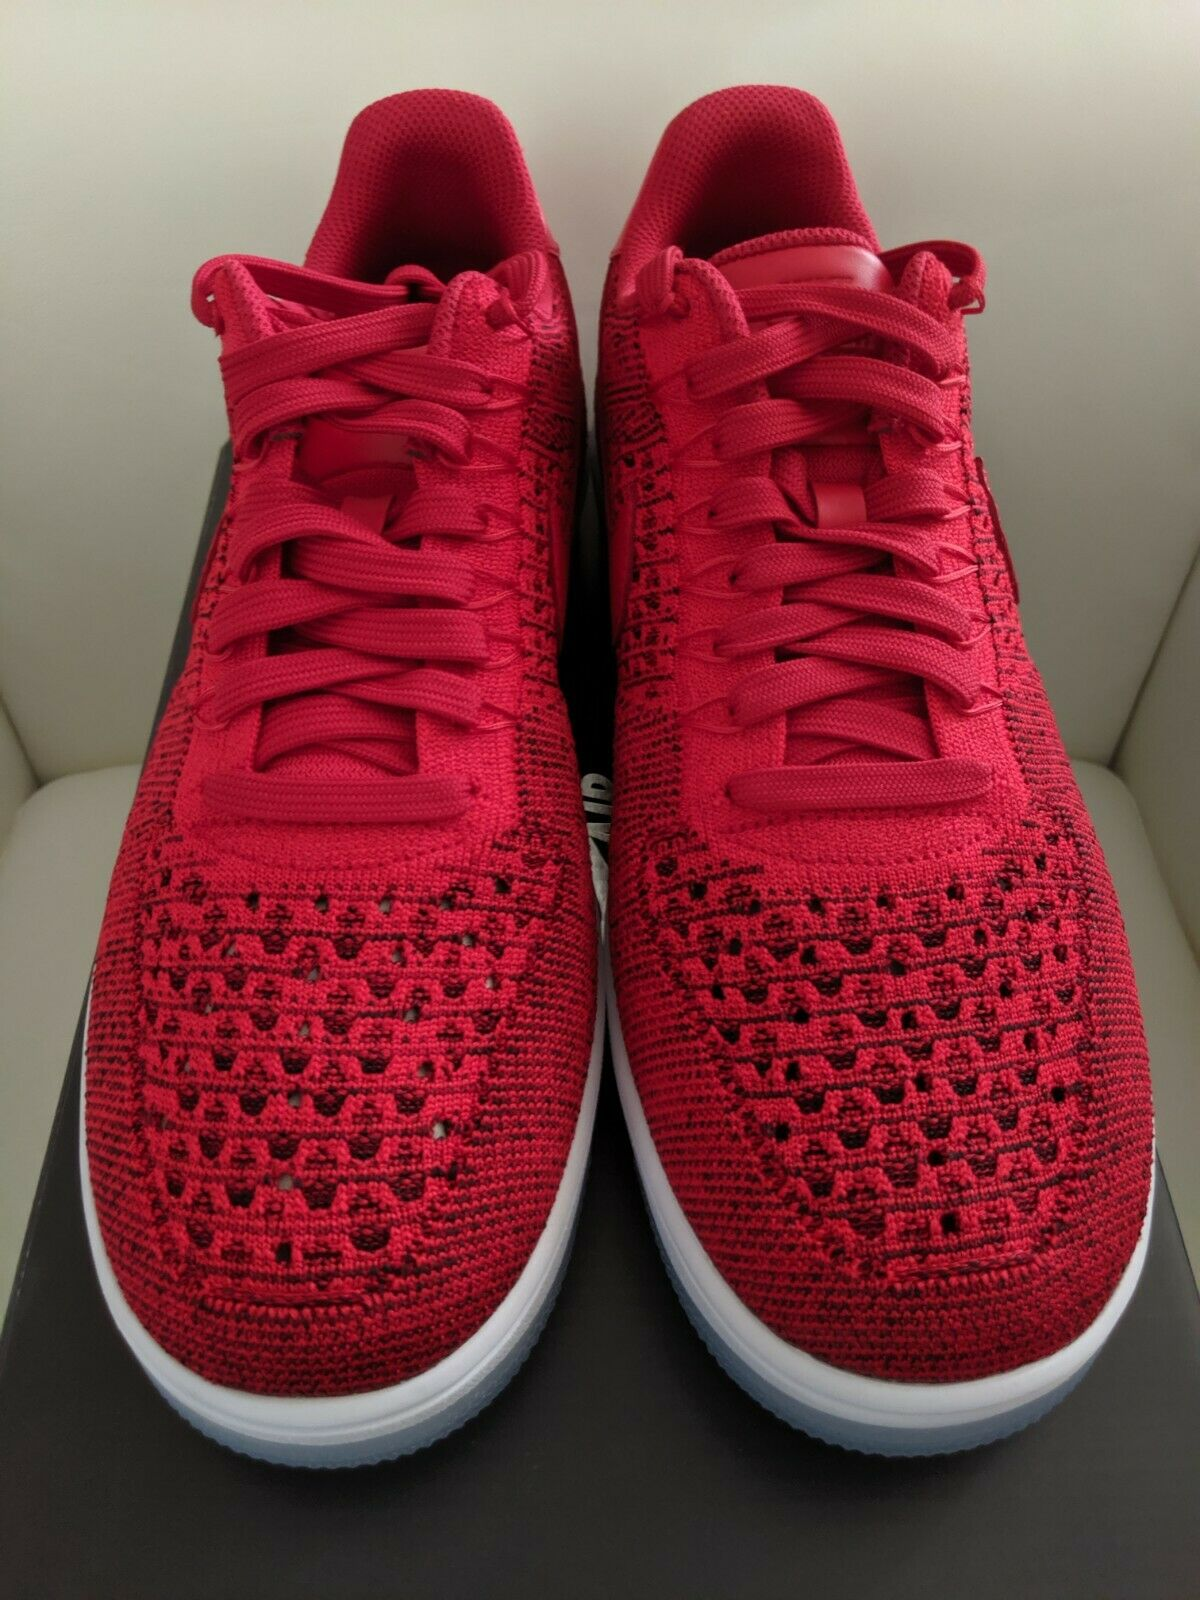 newest a4eb1 16a49 Nike Air Force 1 Ultra Flyknit Low Mens Shoes Sz 9 University Red 817419-600